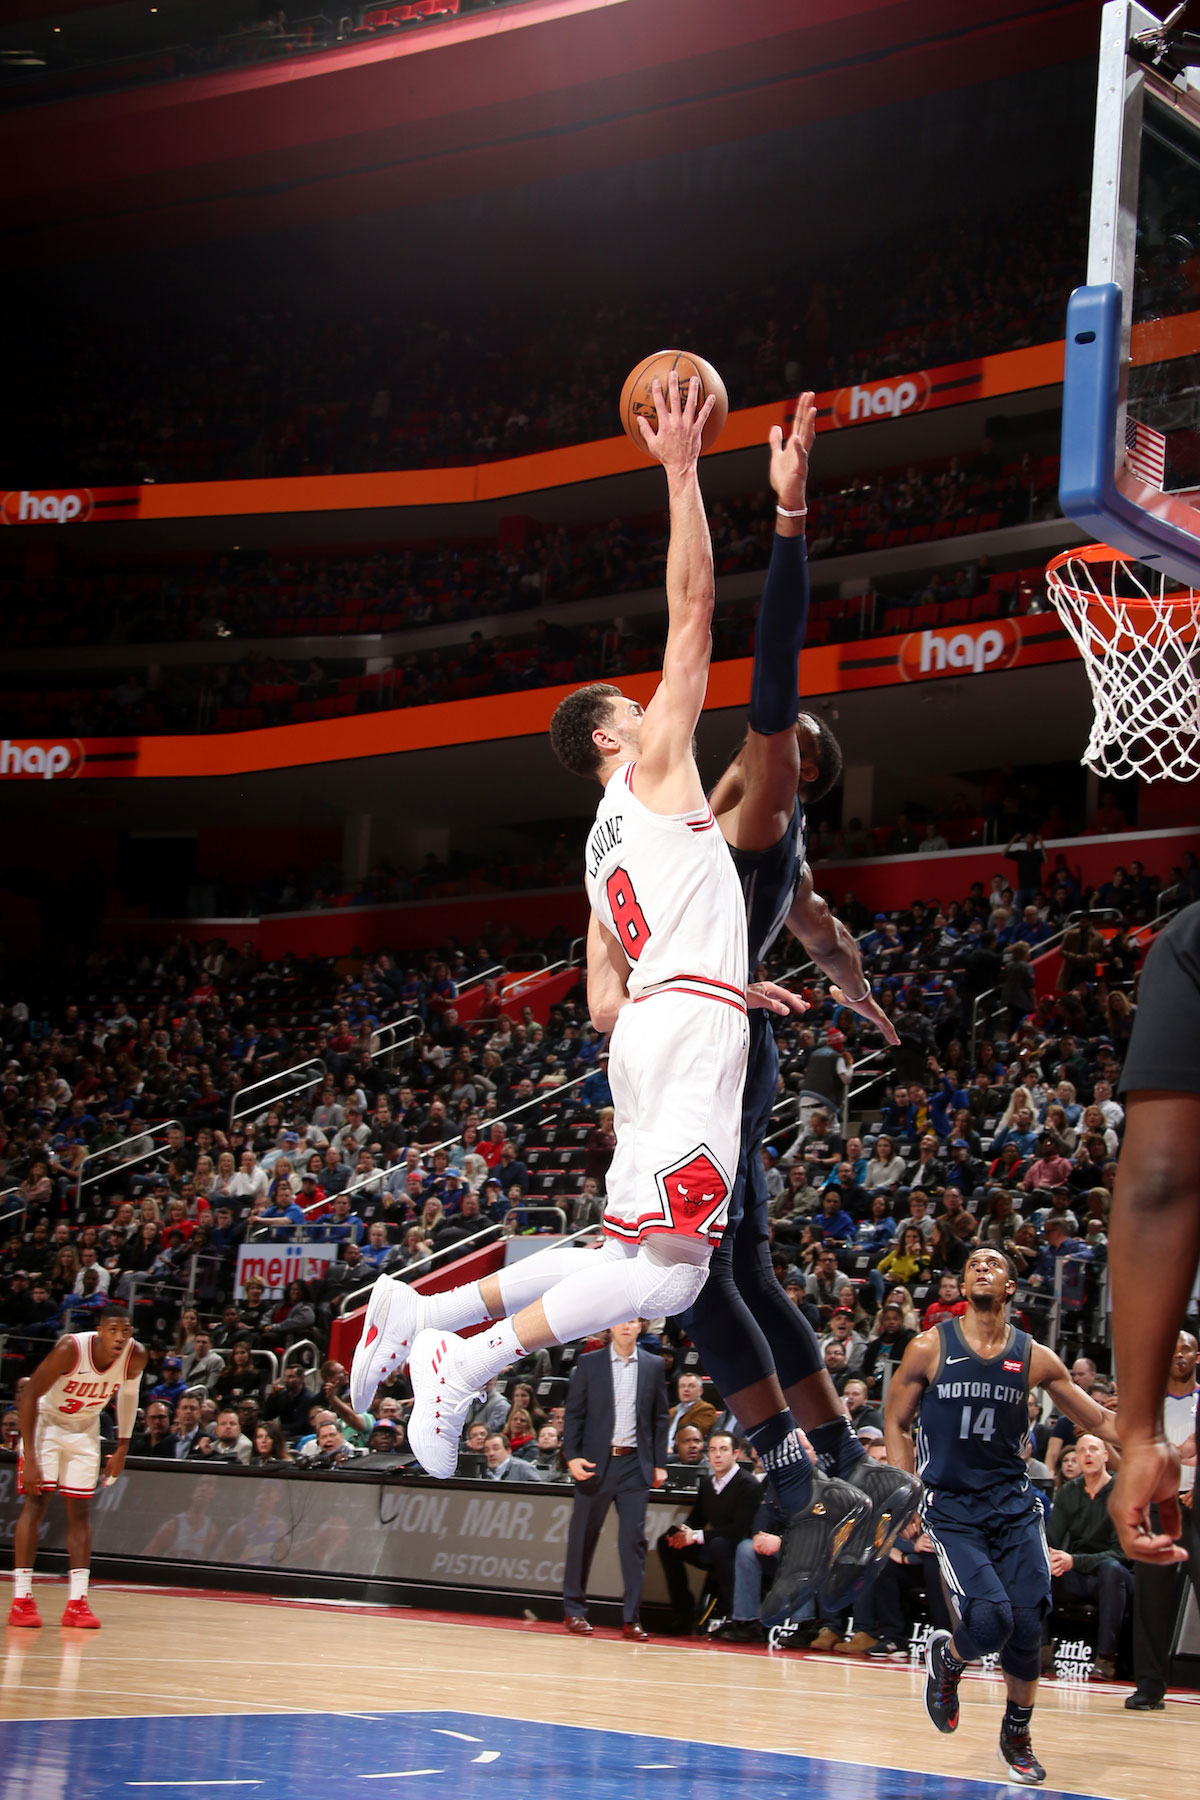 Zach LaVine #8 of the Chicago Bulls dunks the ball during the game against the Detroit Pistons